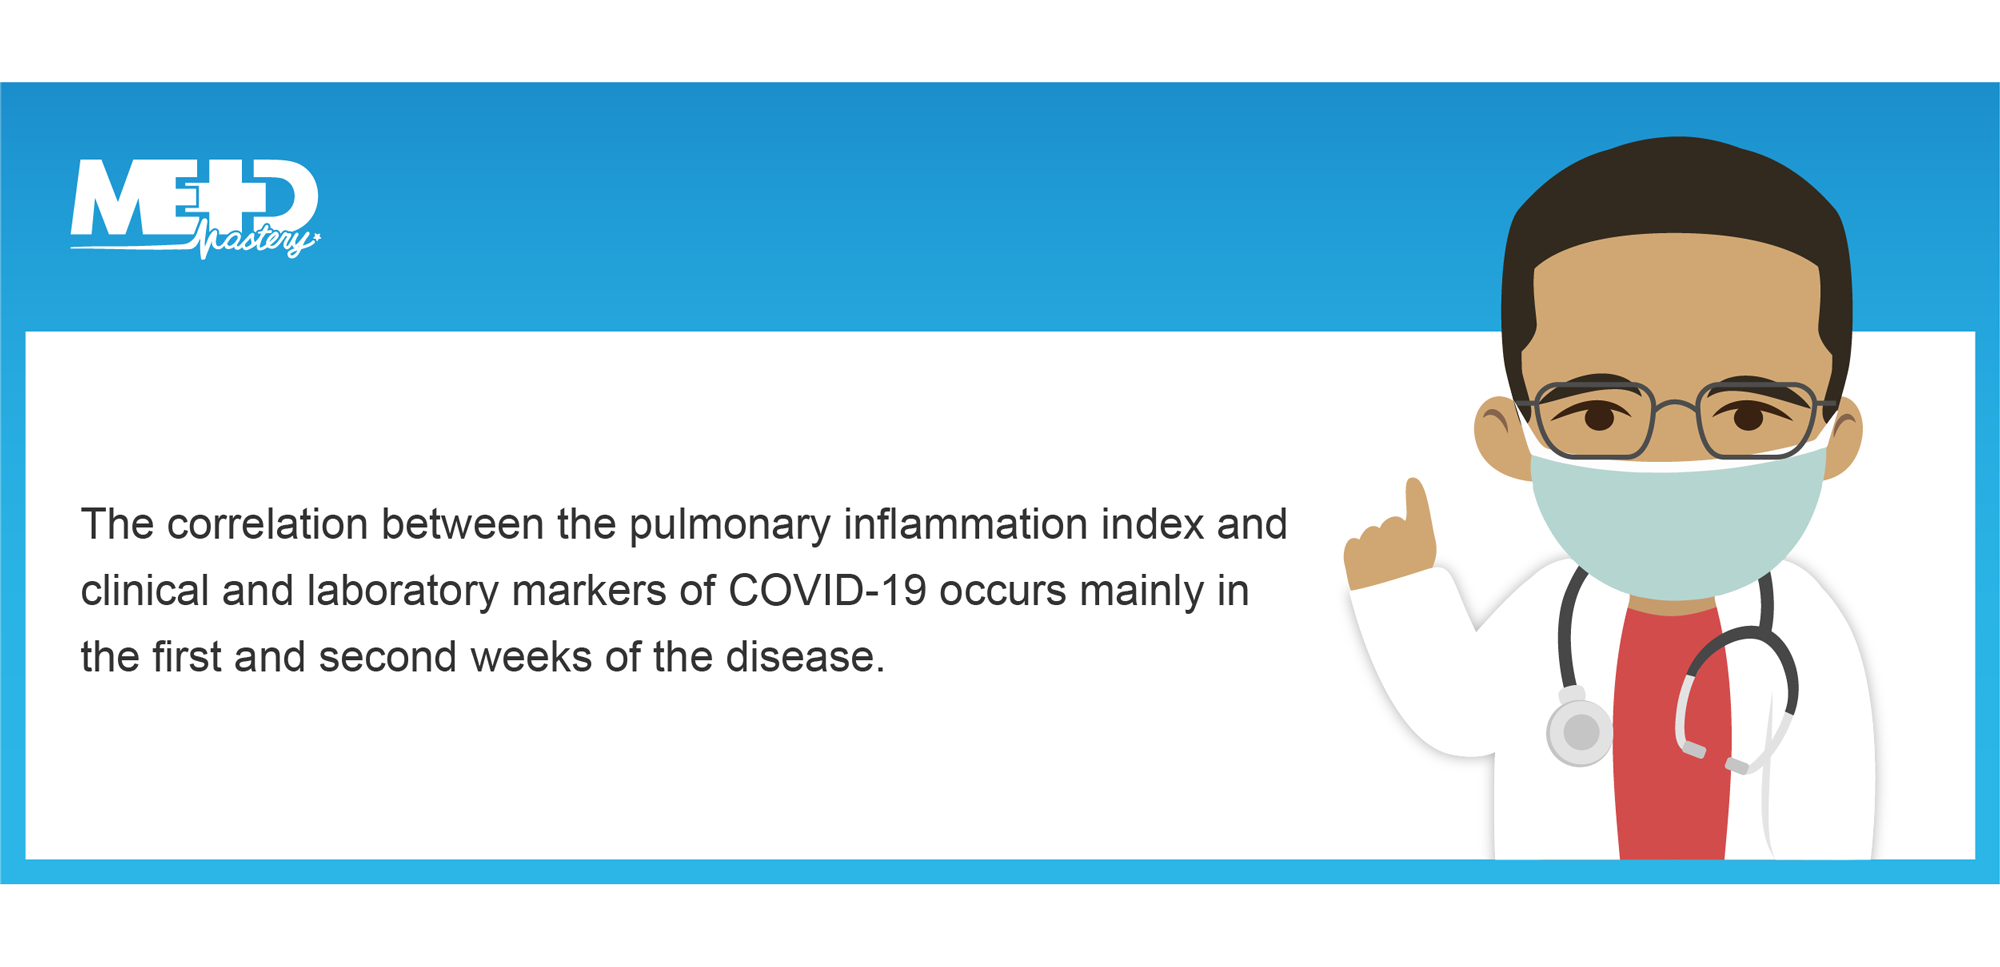 The correlation between the pulmonary inflammation index and clinical and laboratory markers of COVID-19 occurs mainly in the first and second weeks of the disease.